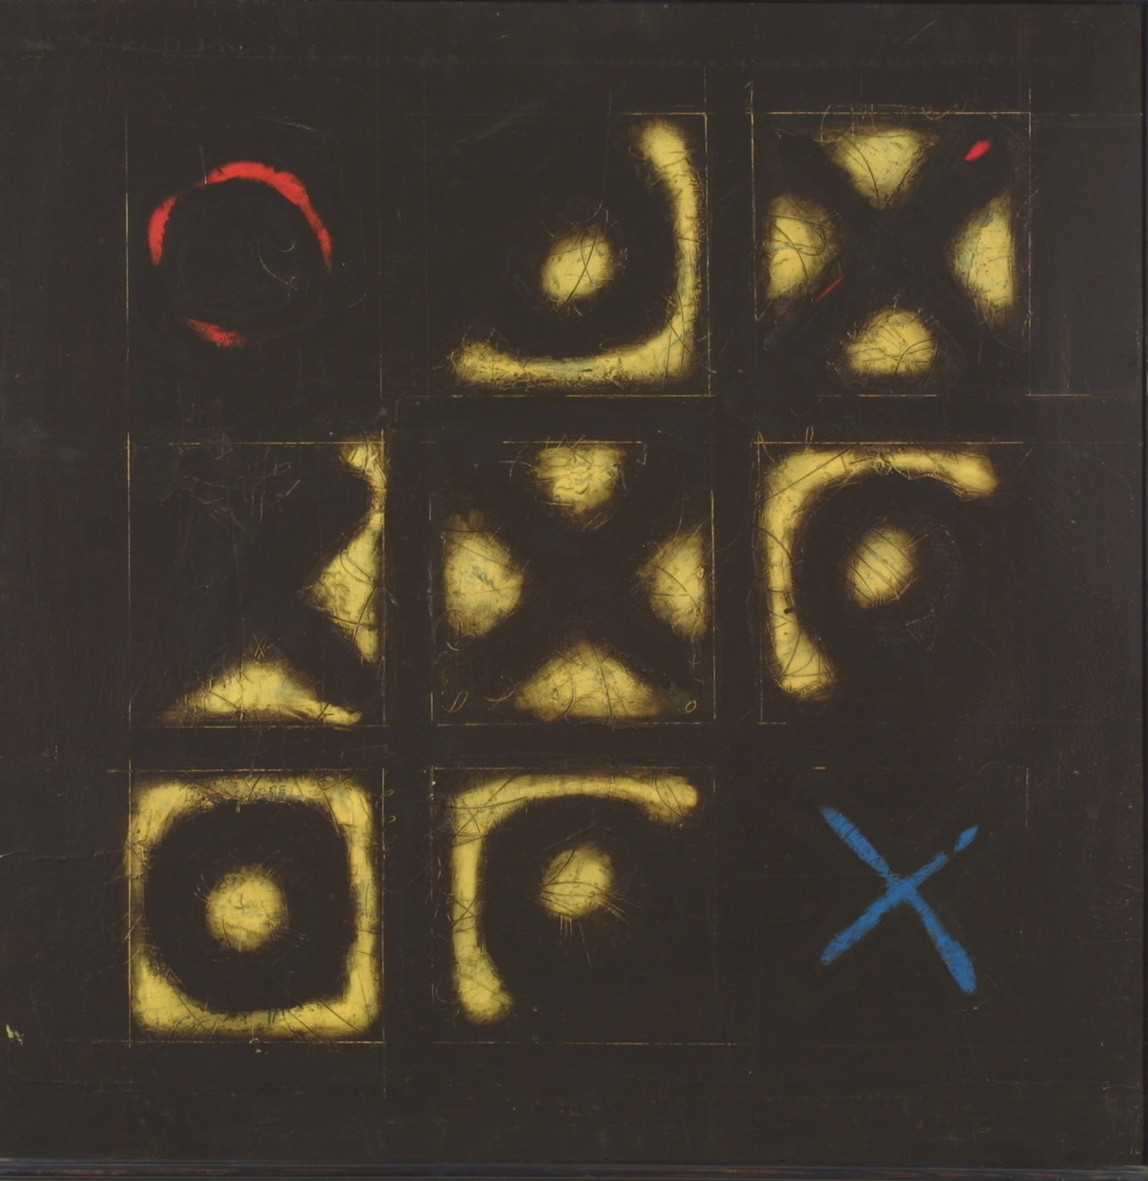 0 and Cross, 1997, oil, canvas, 90x90